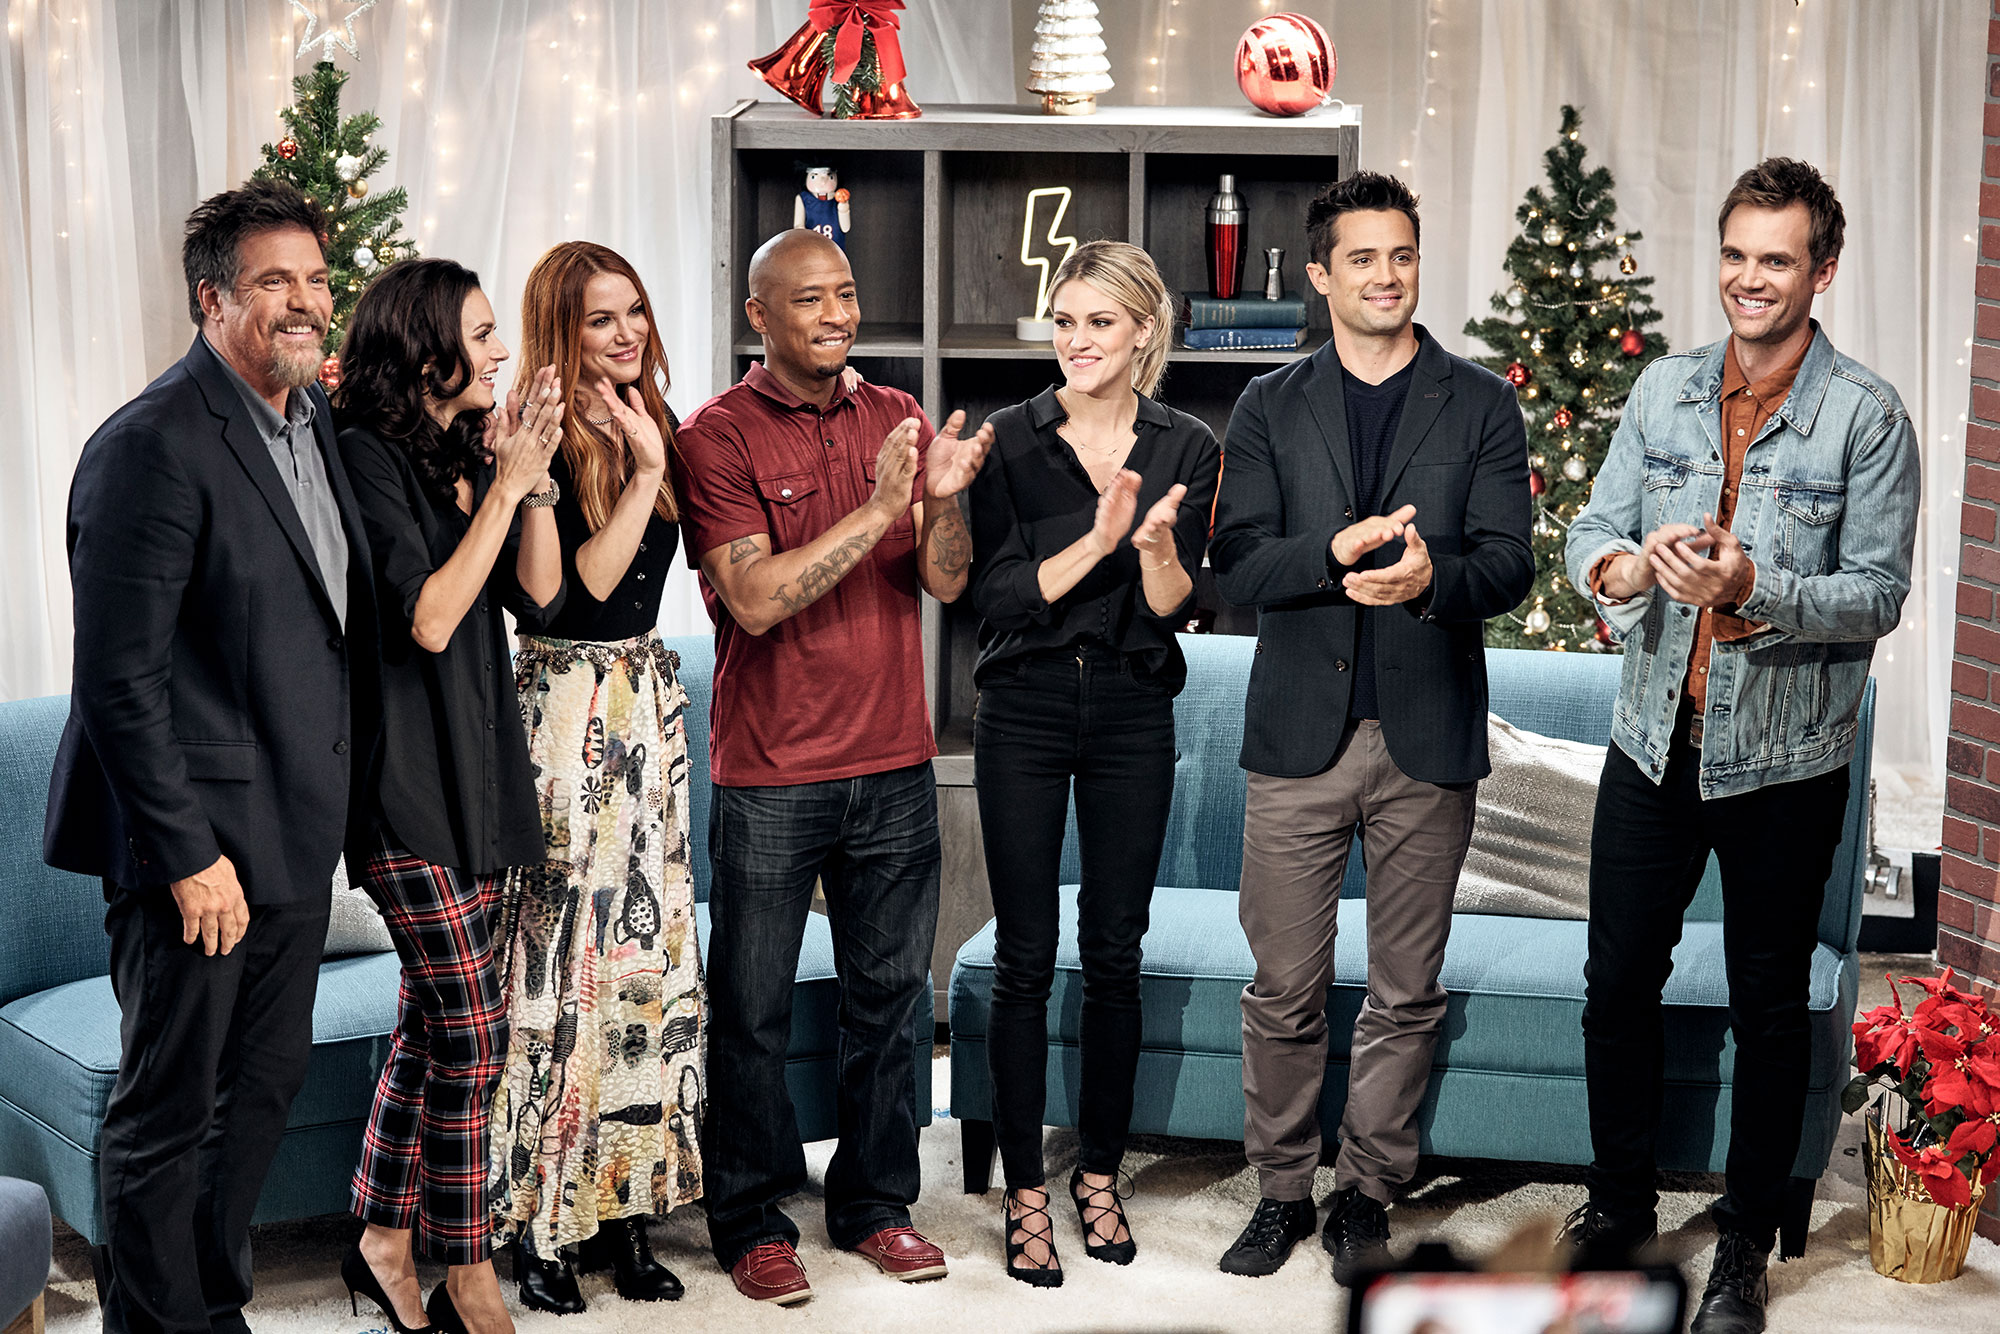 Cast Of Christmas Contract 2020 One Tree Hill Cast on Reuniting in Lifetime's The Christmas